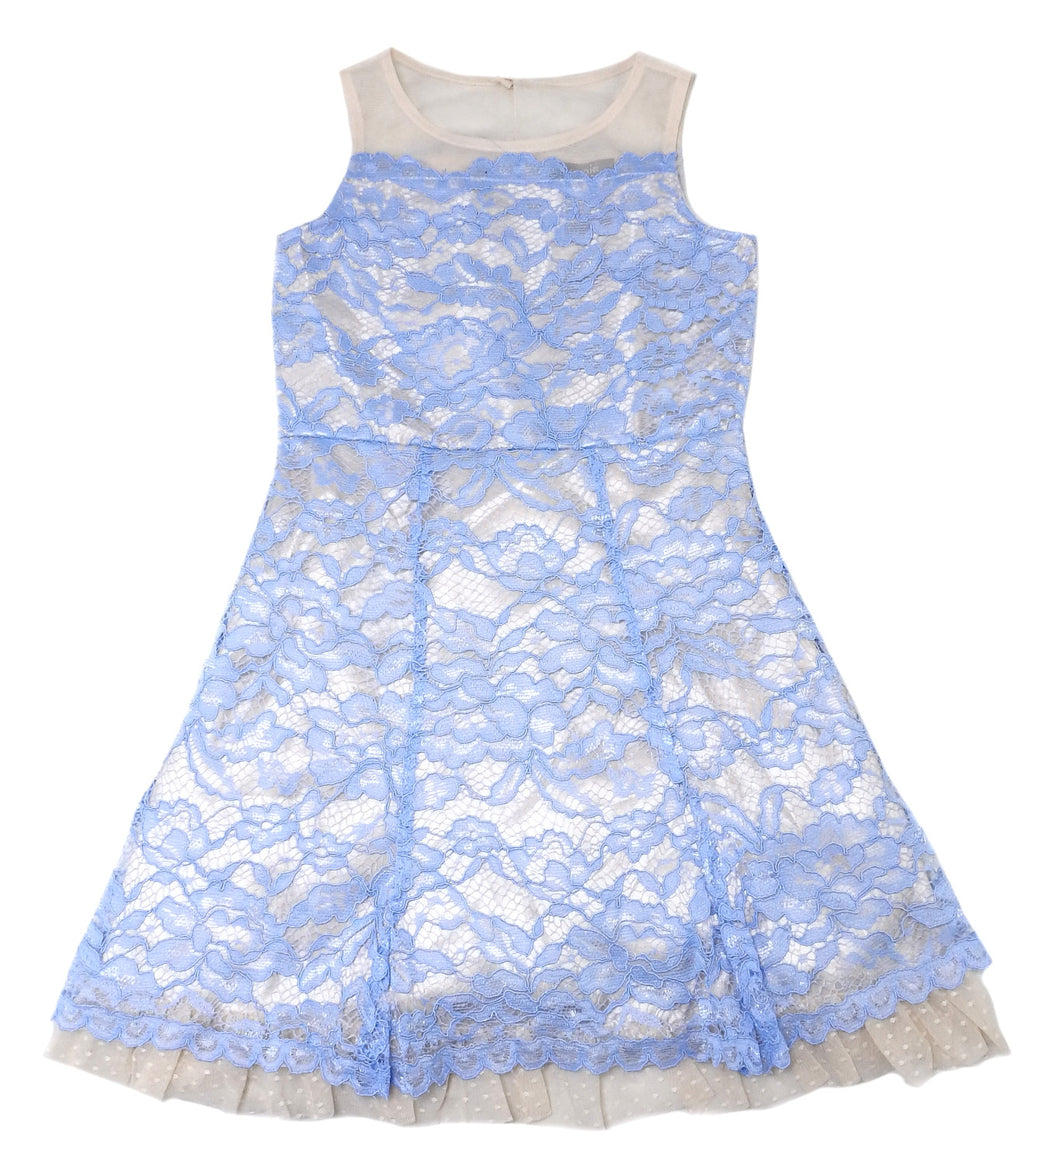 Zunie Girl's Size 8 Special Occasion Dress, Light Blue/Beige